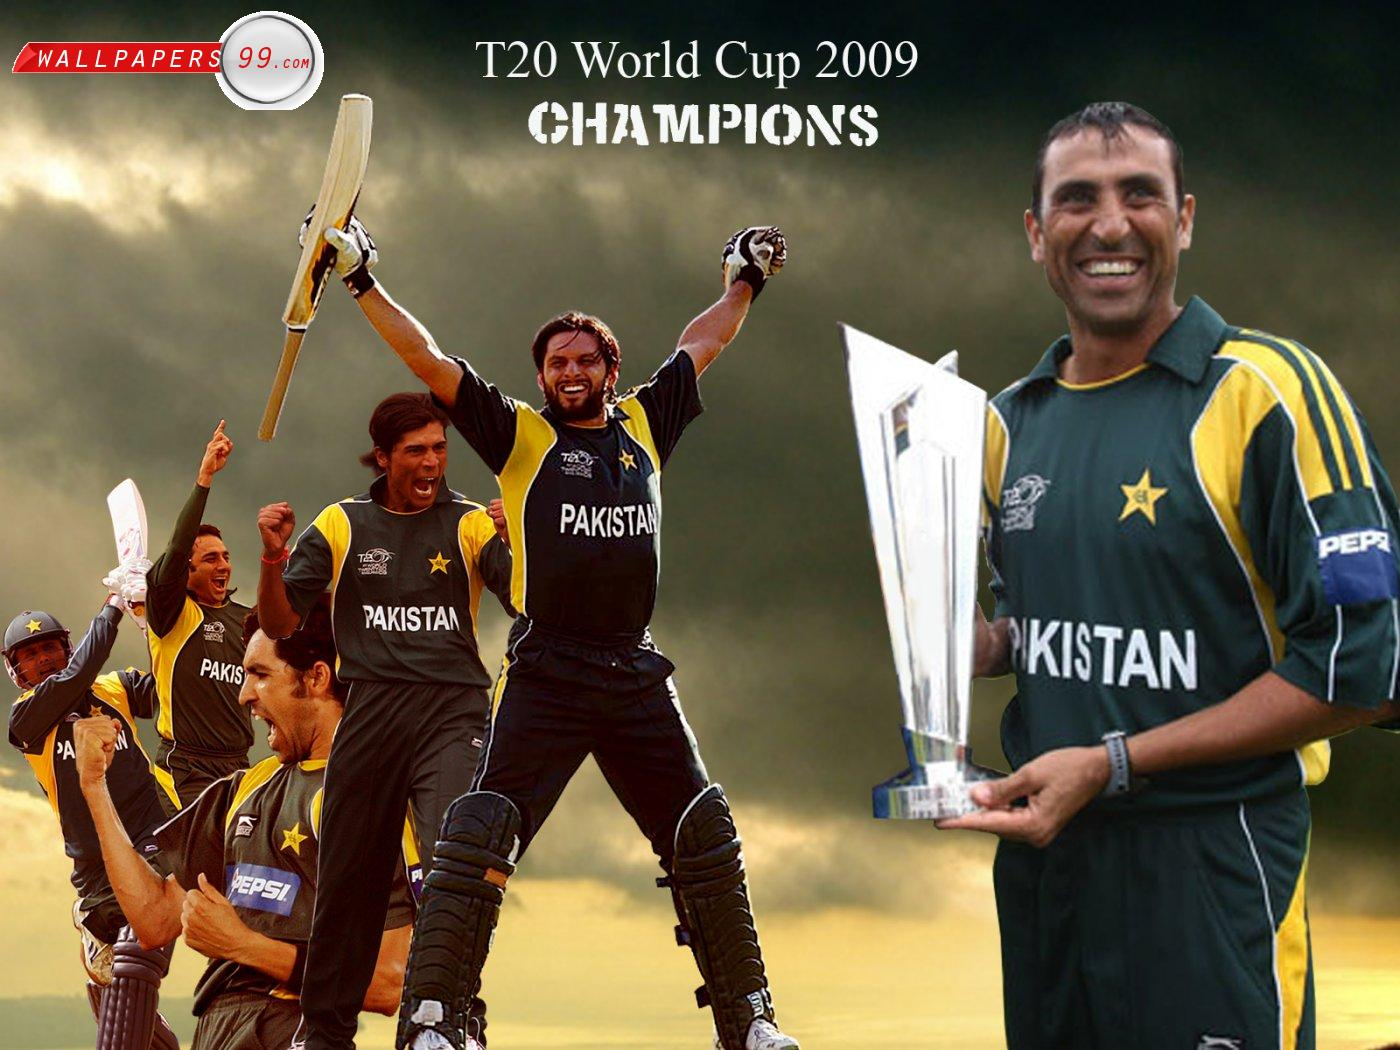 Cricket Pakistan Images Pakistanteam Hd Wallpaper And Background